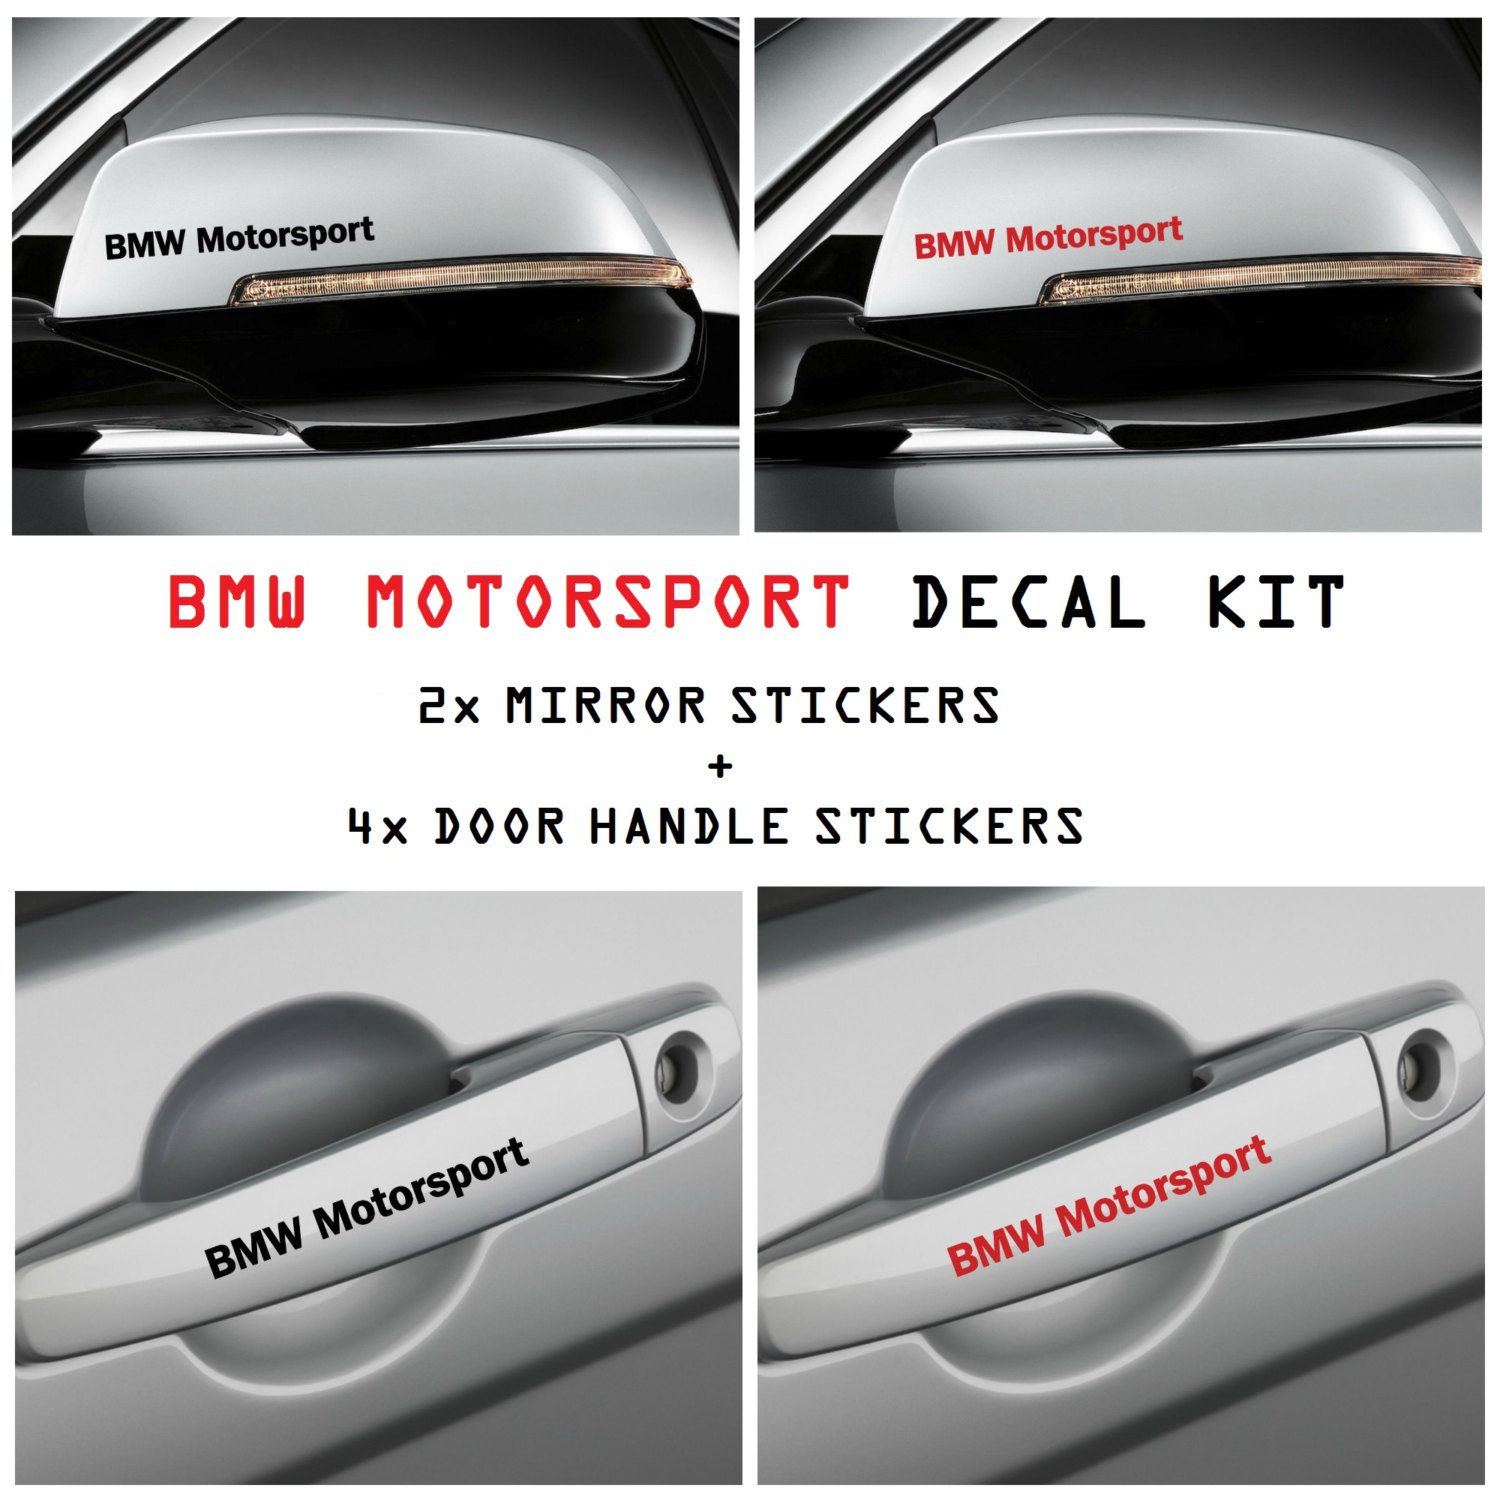 fasmoto audiotech view smart in spotted bmw decals by with nice melaka image larger